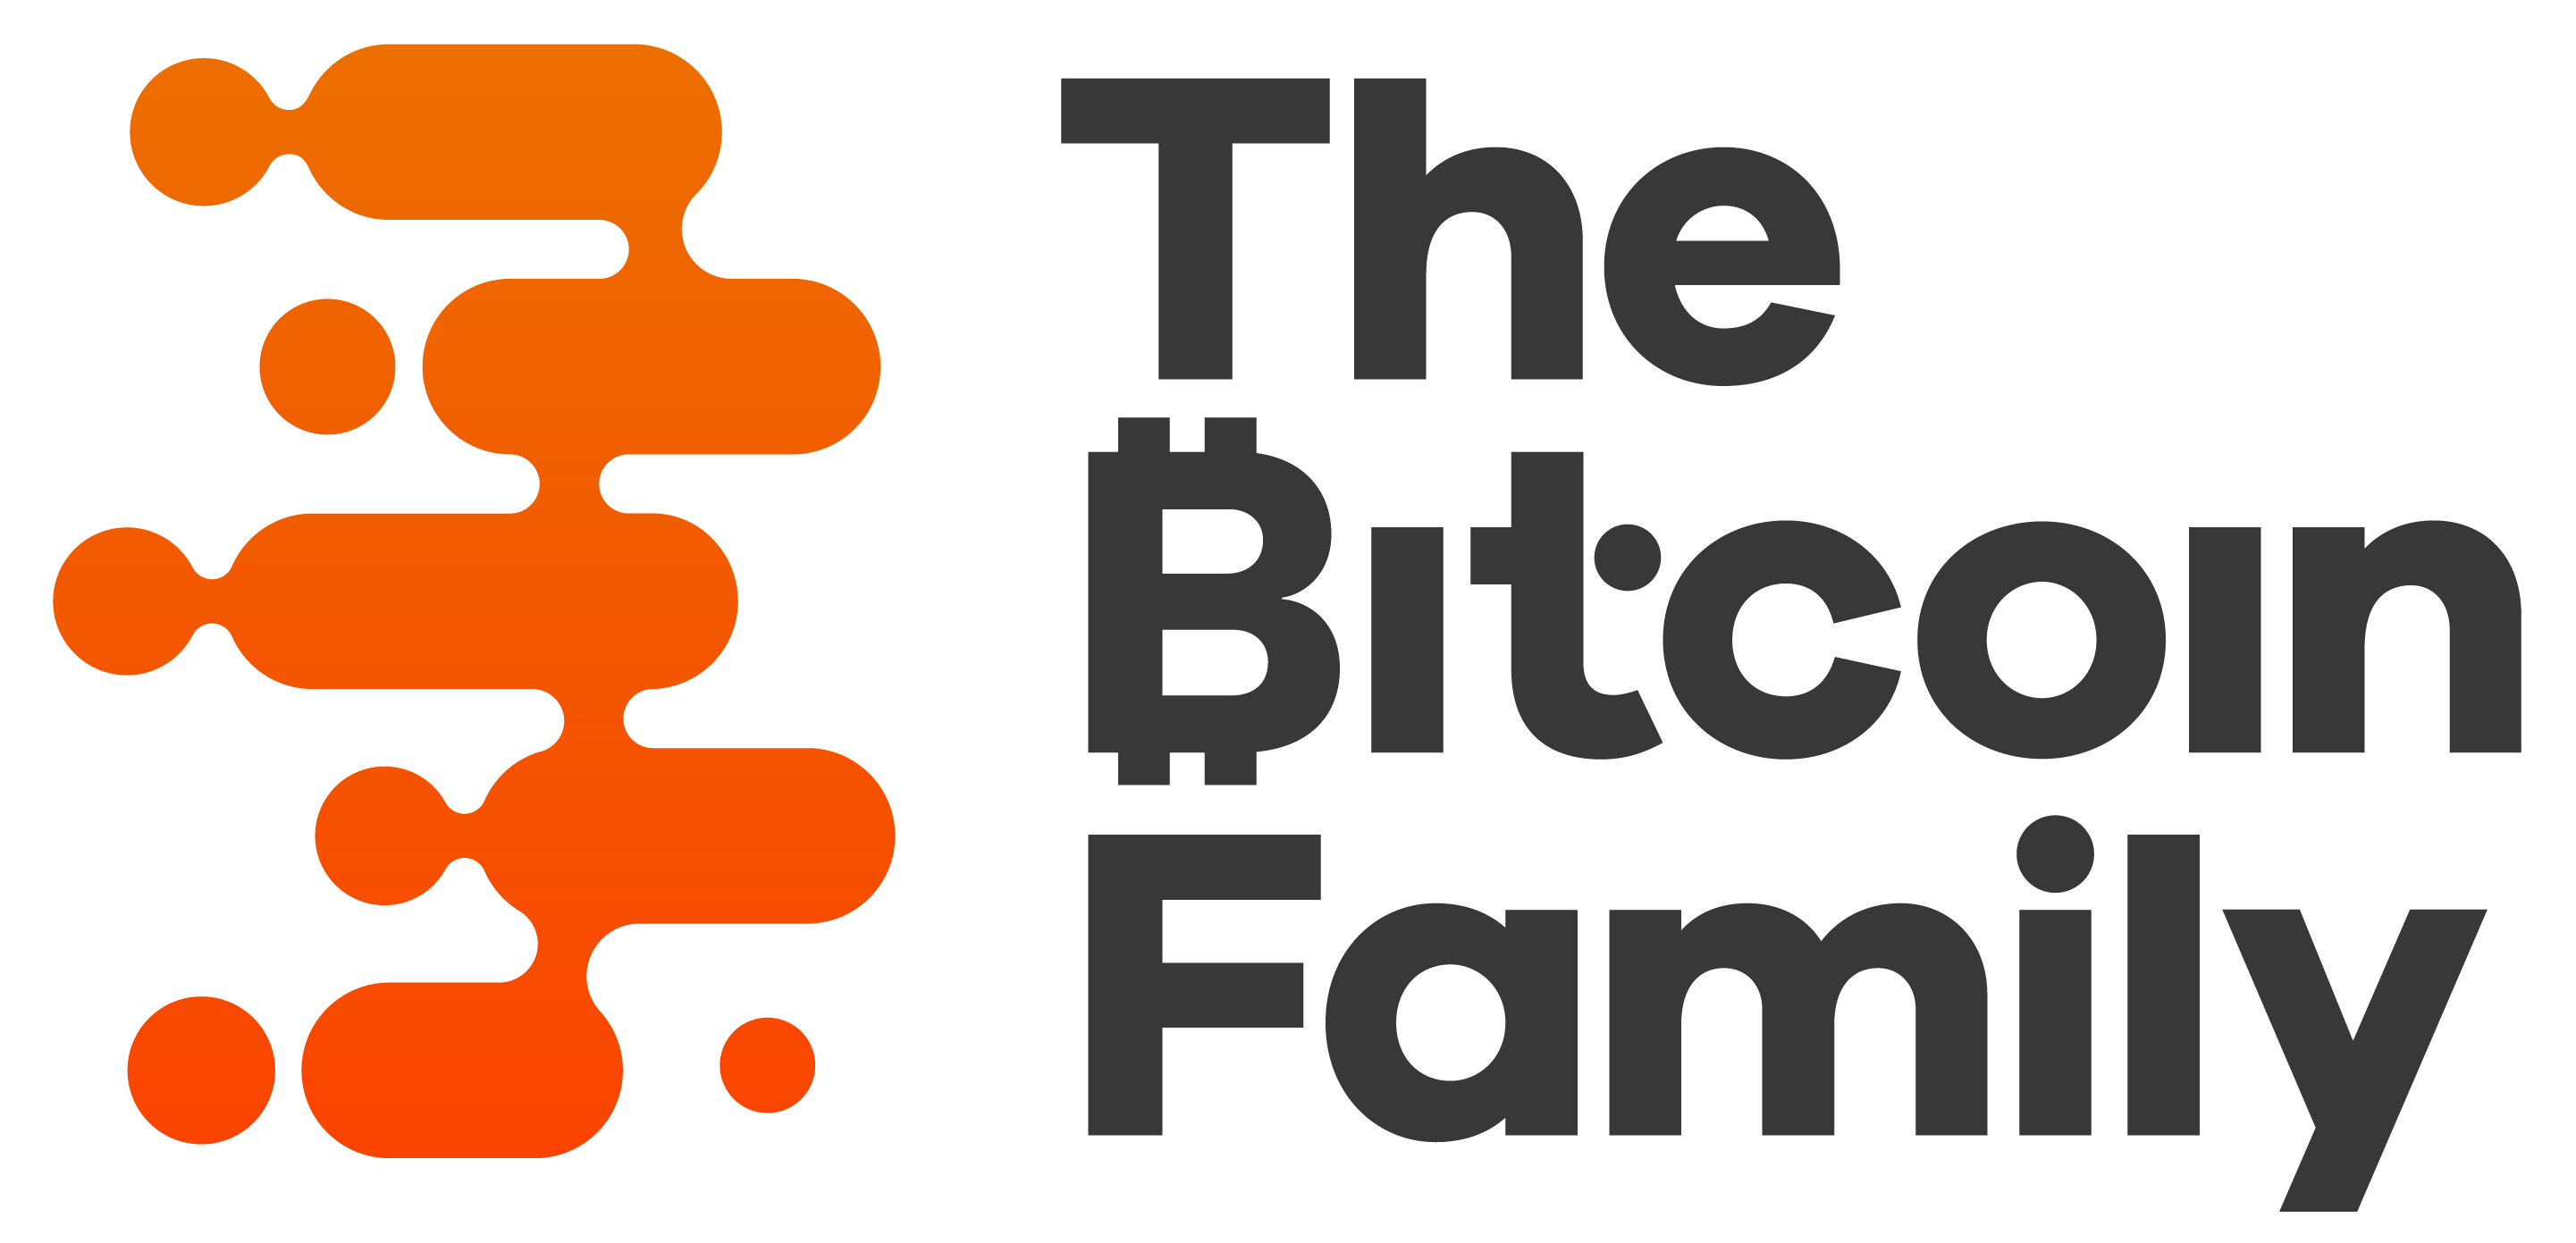 Start The Bitcoin Family